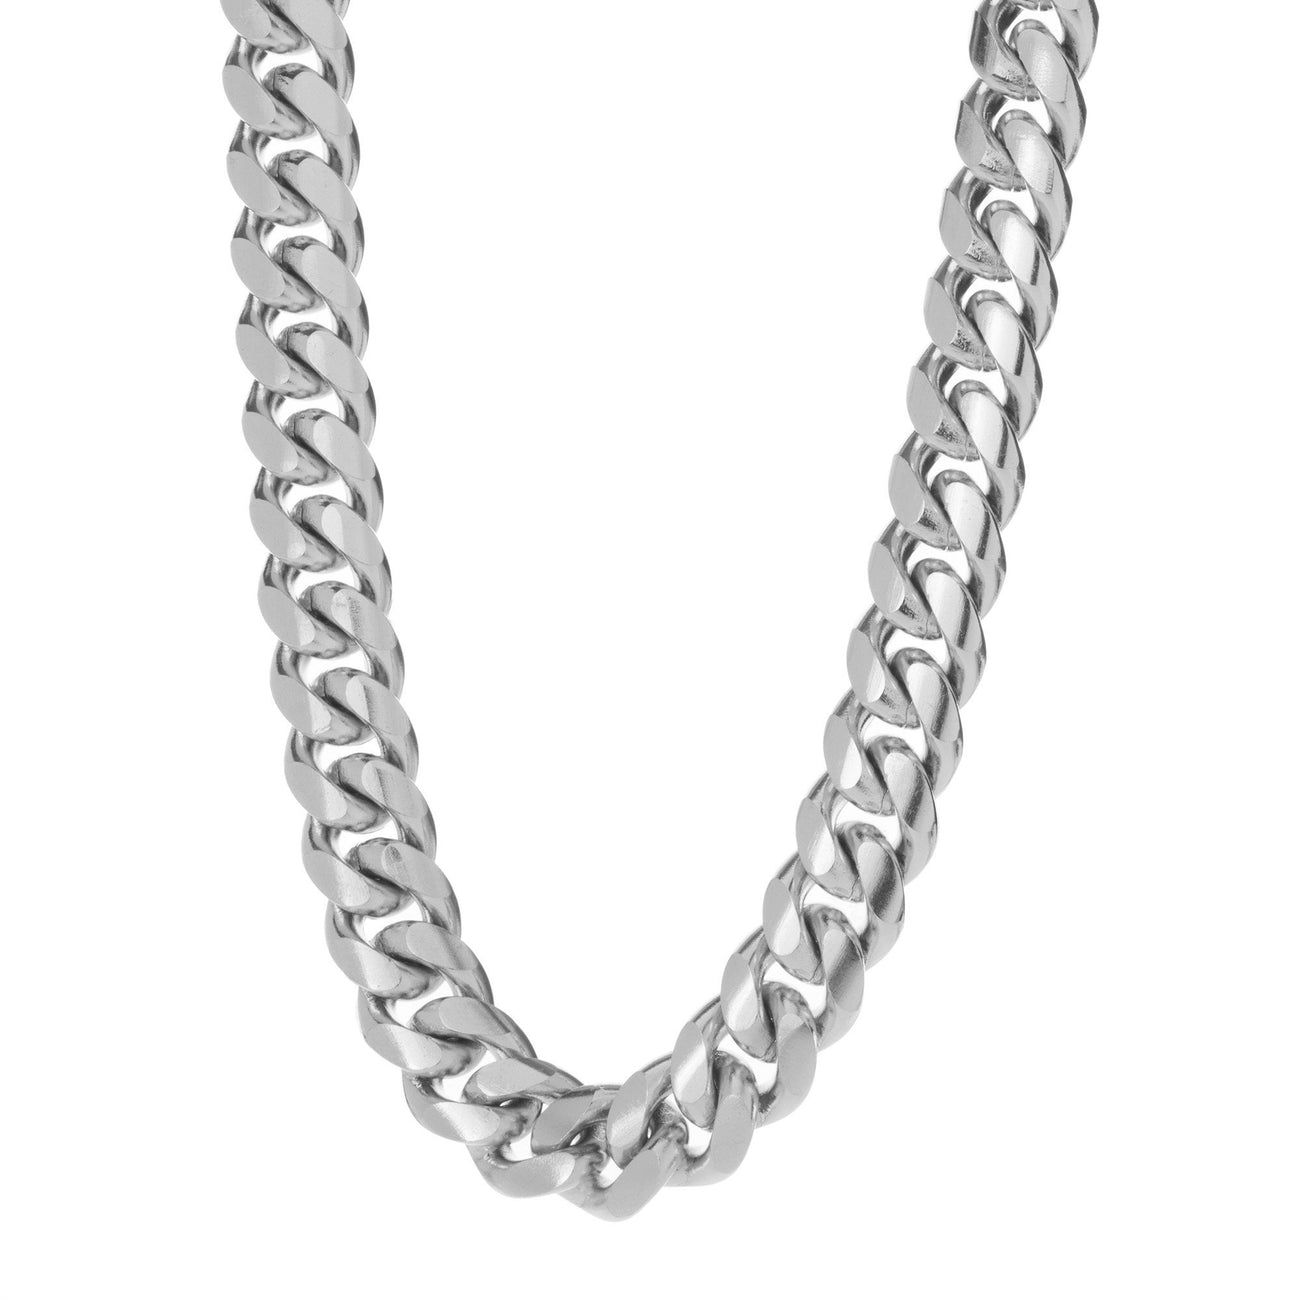 9e5702765ed Heavy Stainless Steel Miami Cuban Link Chain